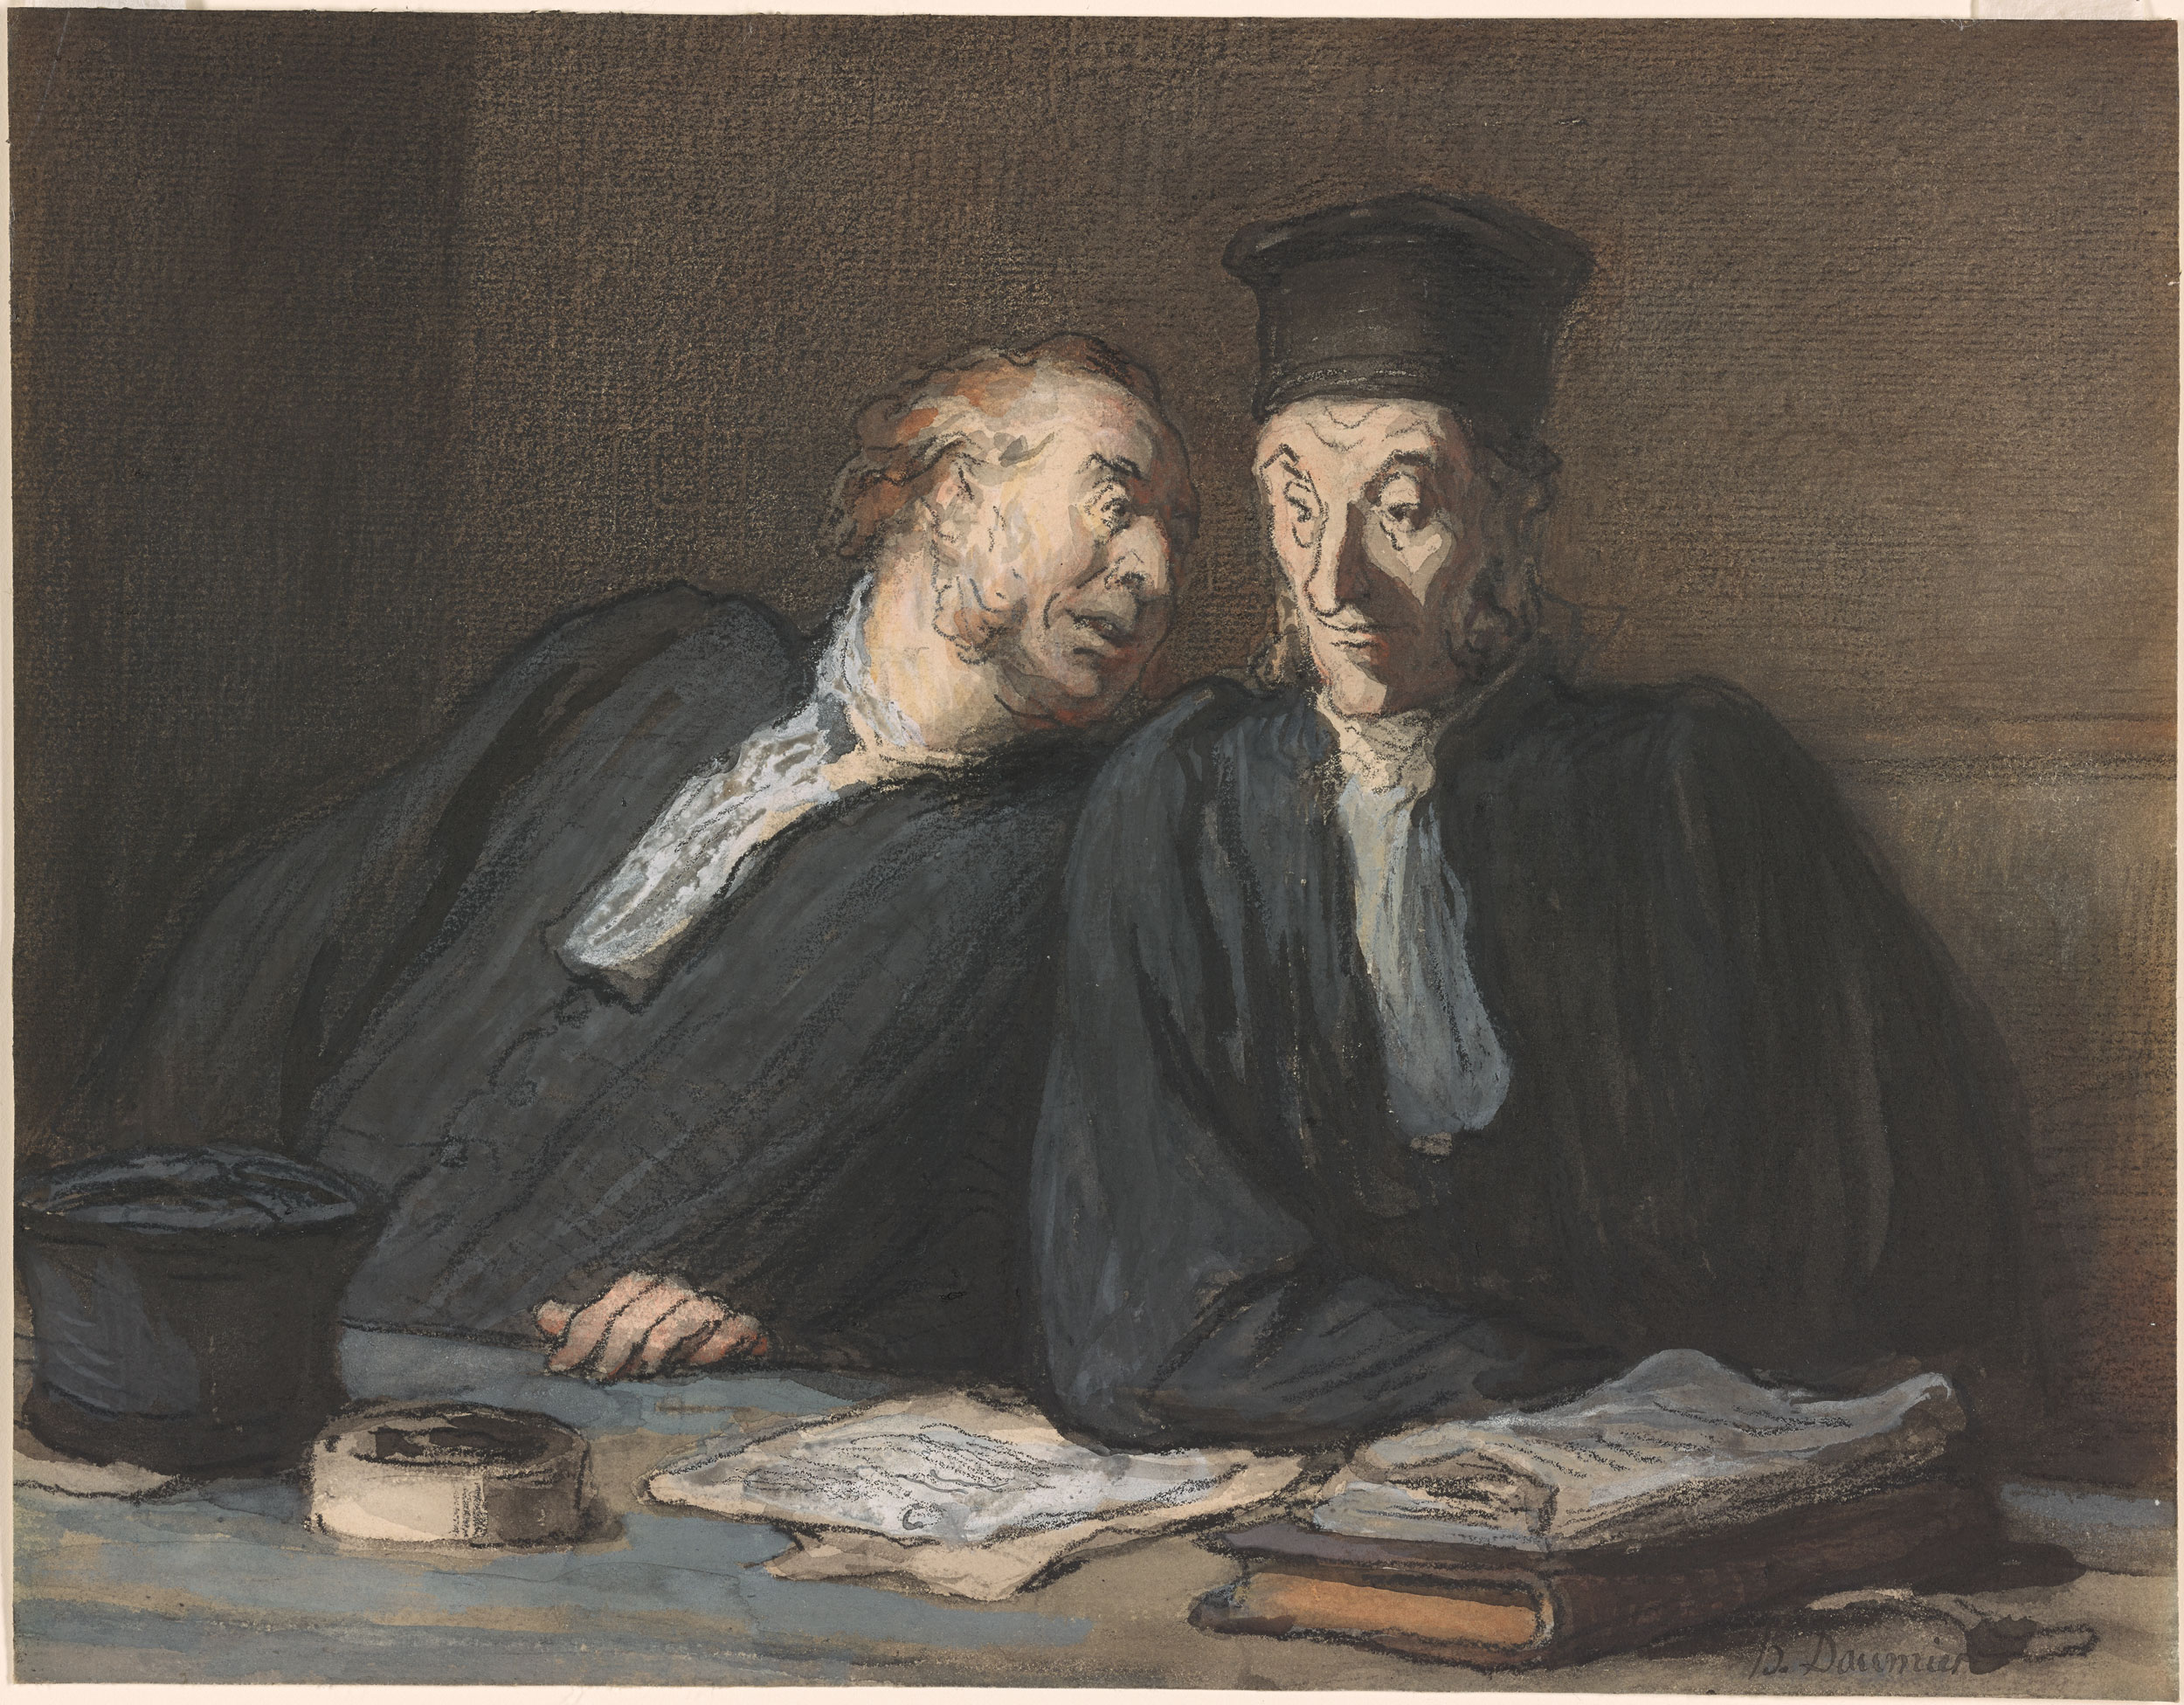 Honor 233 Daumier Two Lawyers Conversing Drawings Online